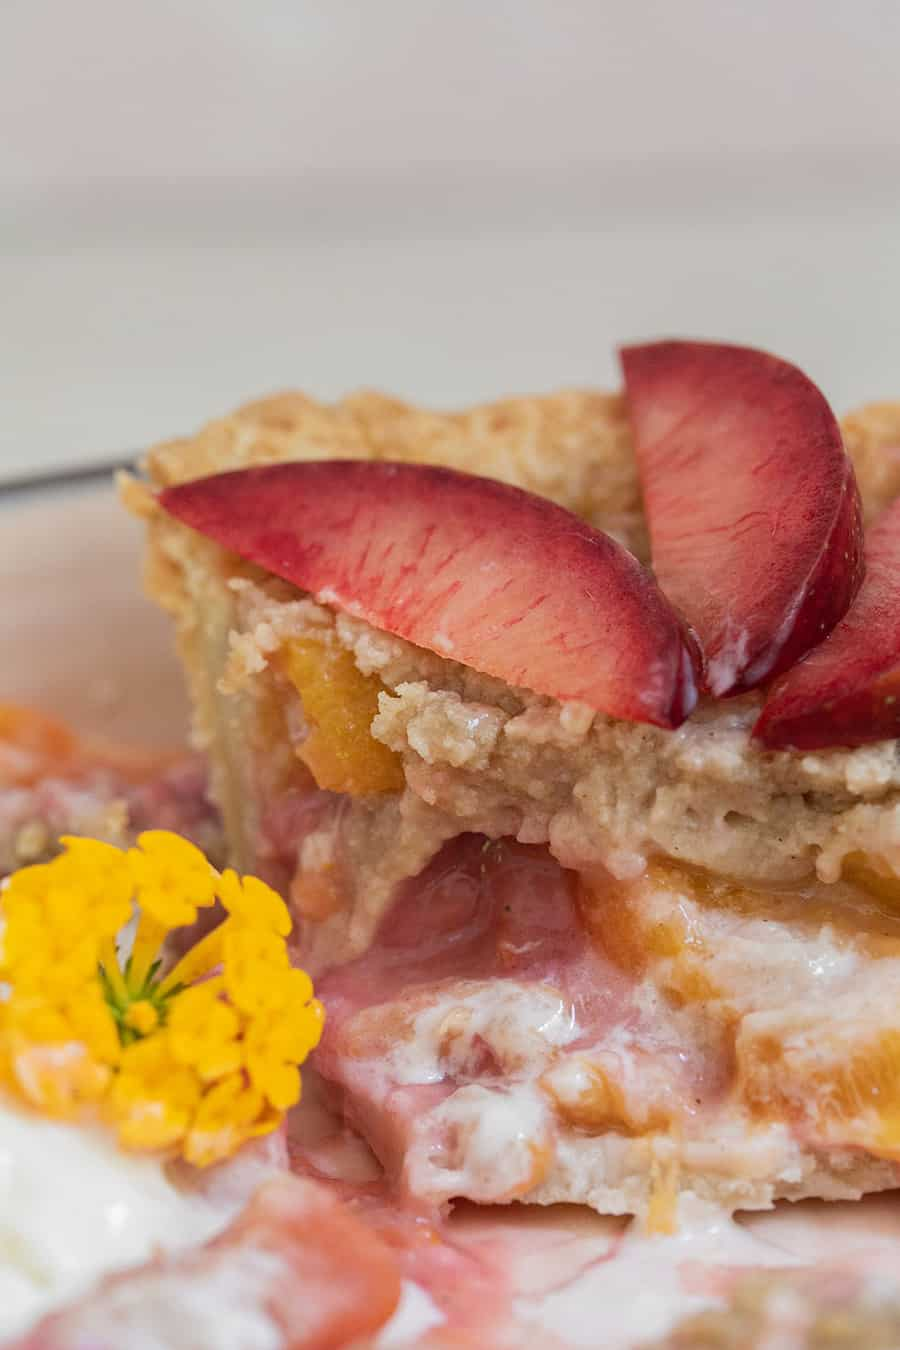 Sliced plumcots on a crumble pie topping with yellow flowers and apriums.